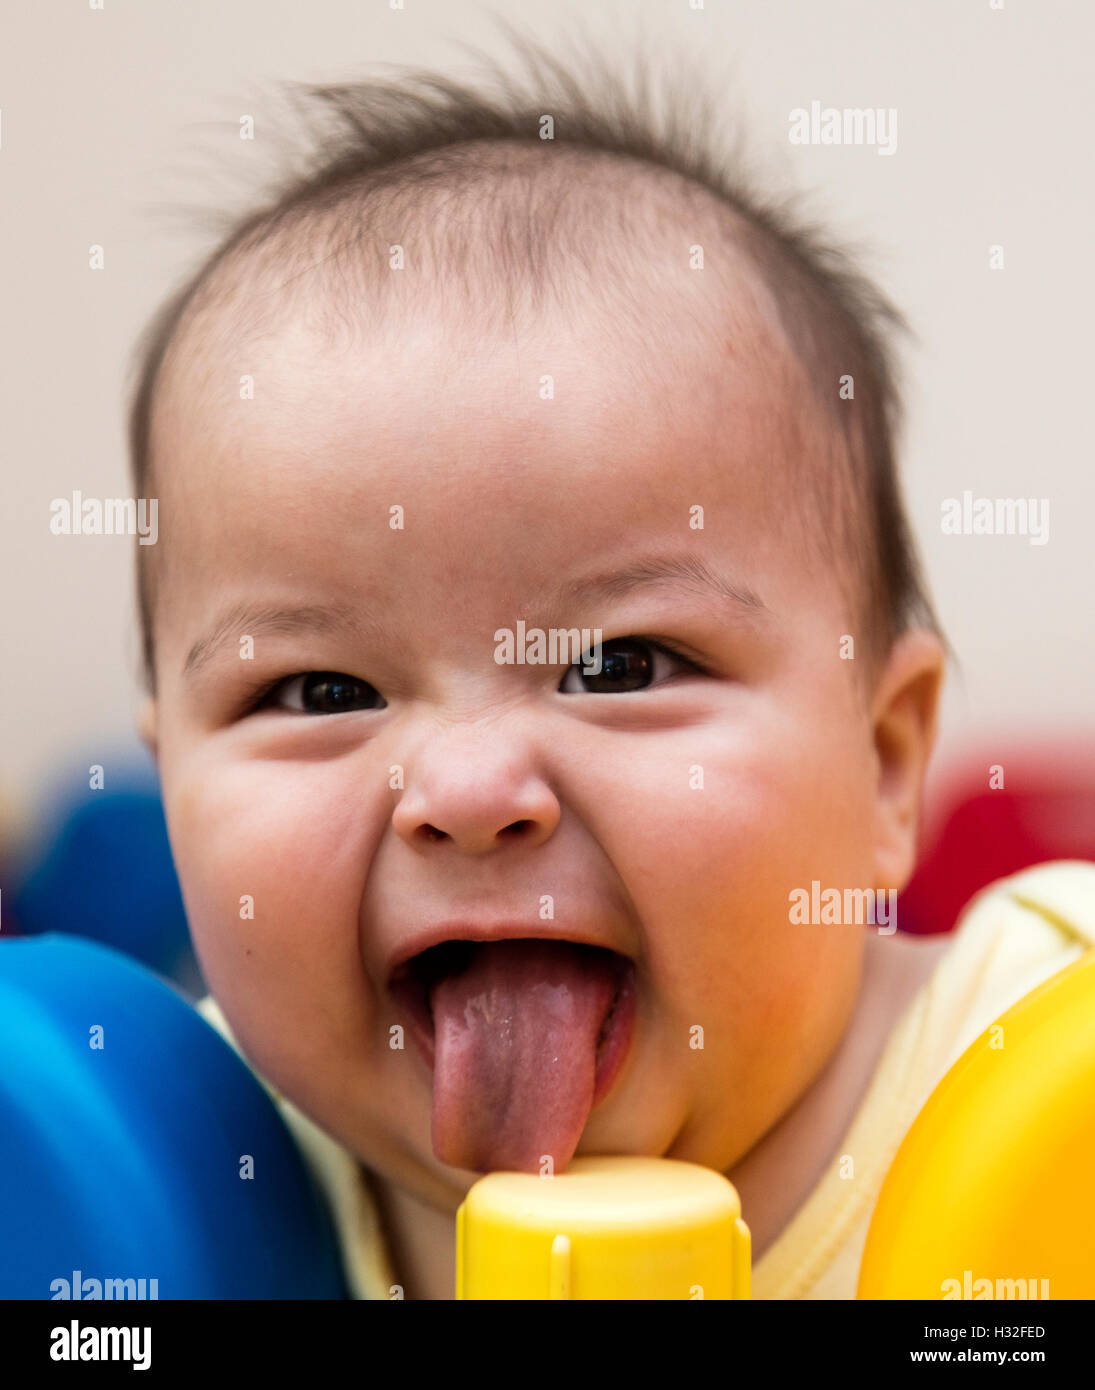 baby with funny grin licking plastic post in playpen - Stock Image